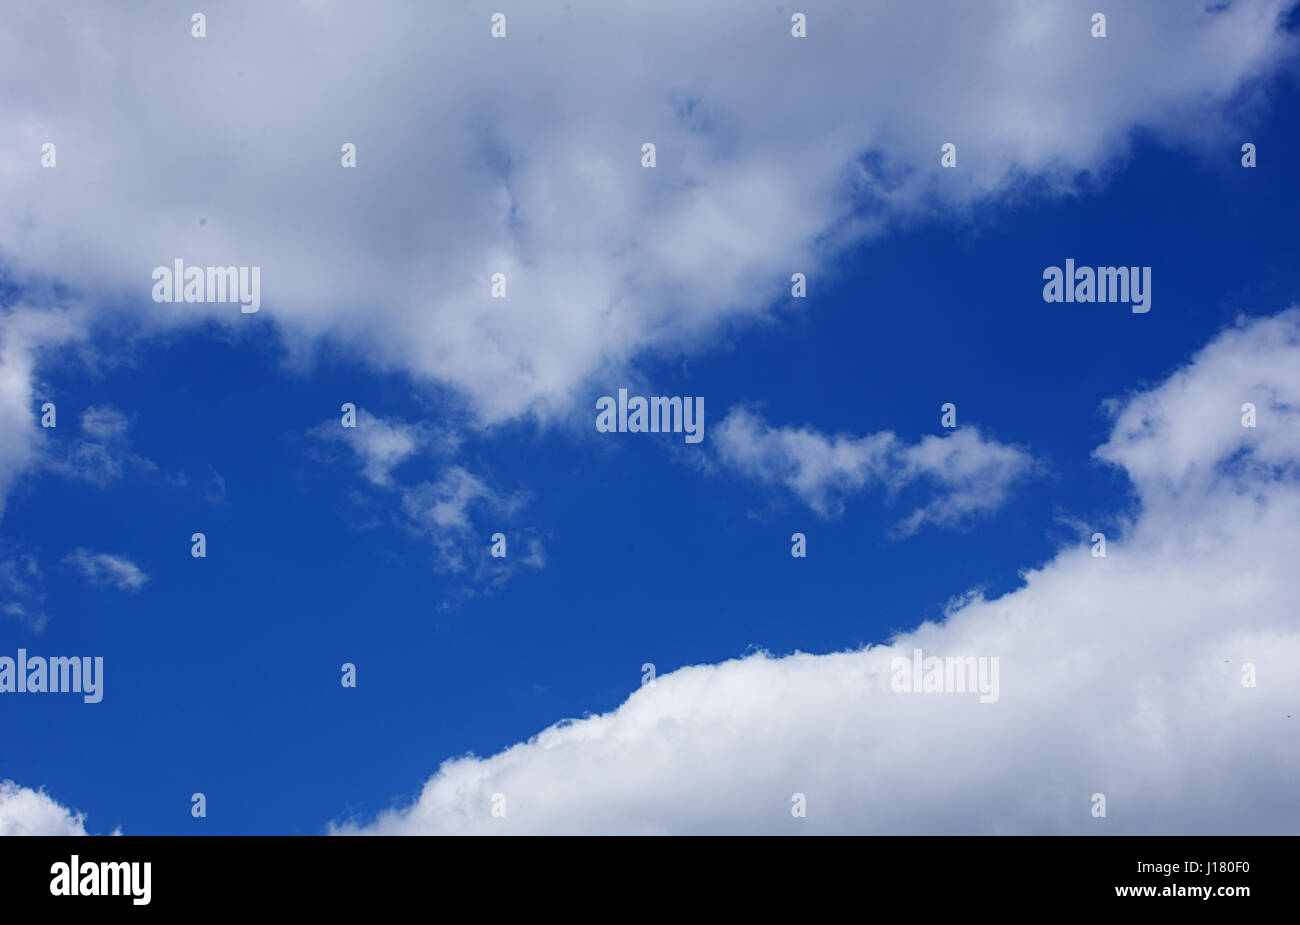 Blue sky with clouds. - Stock Image